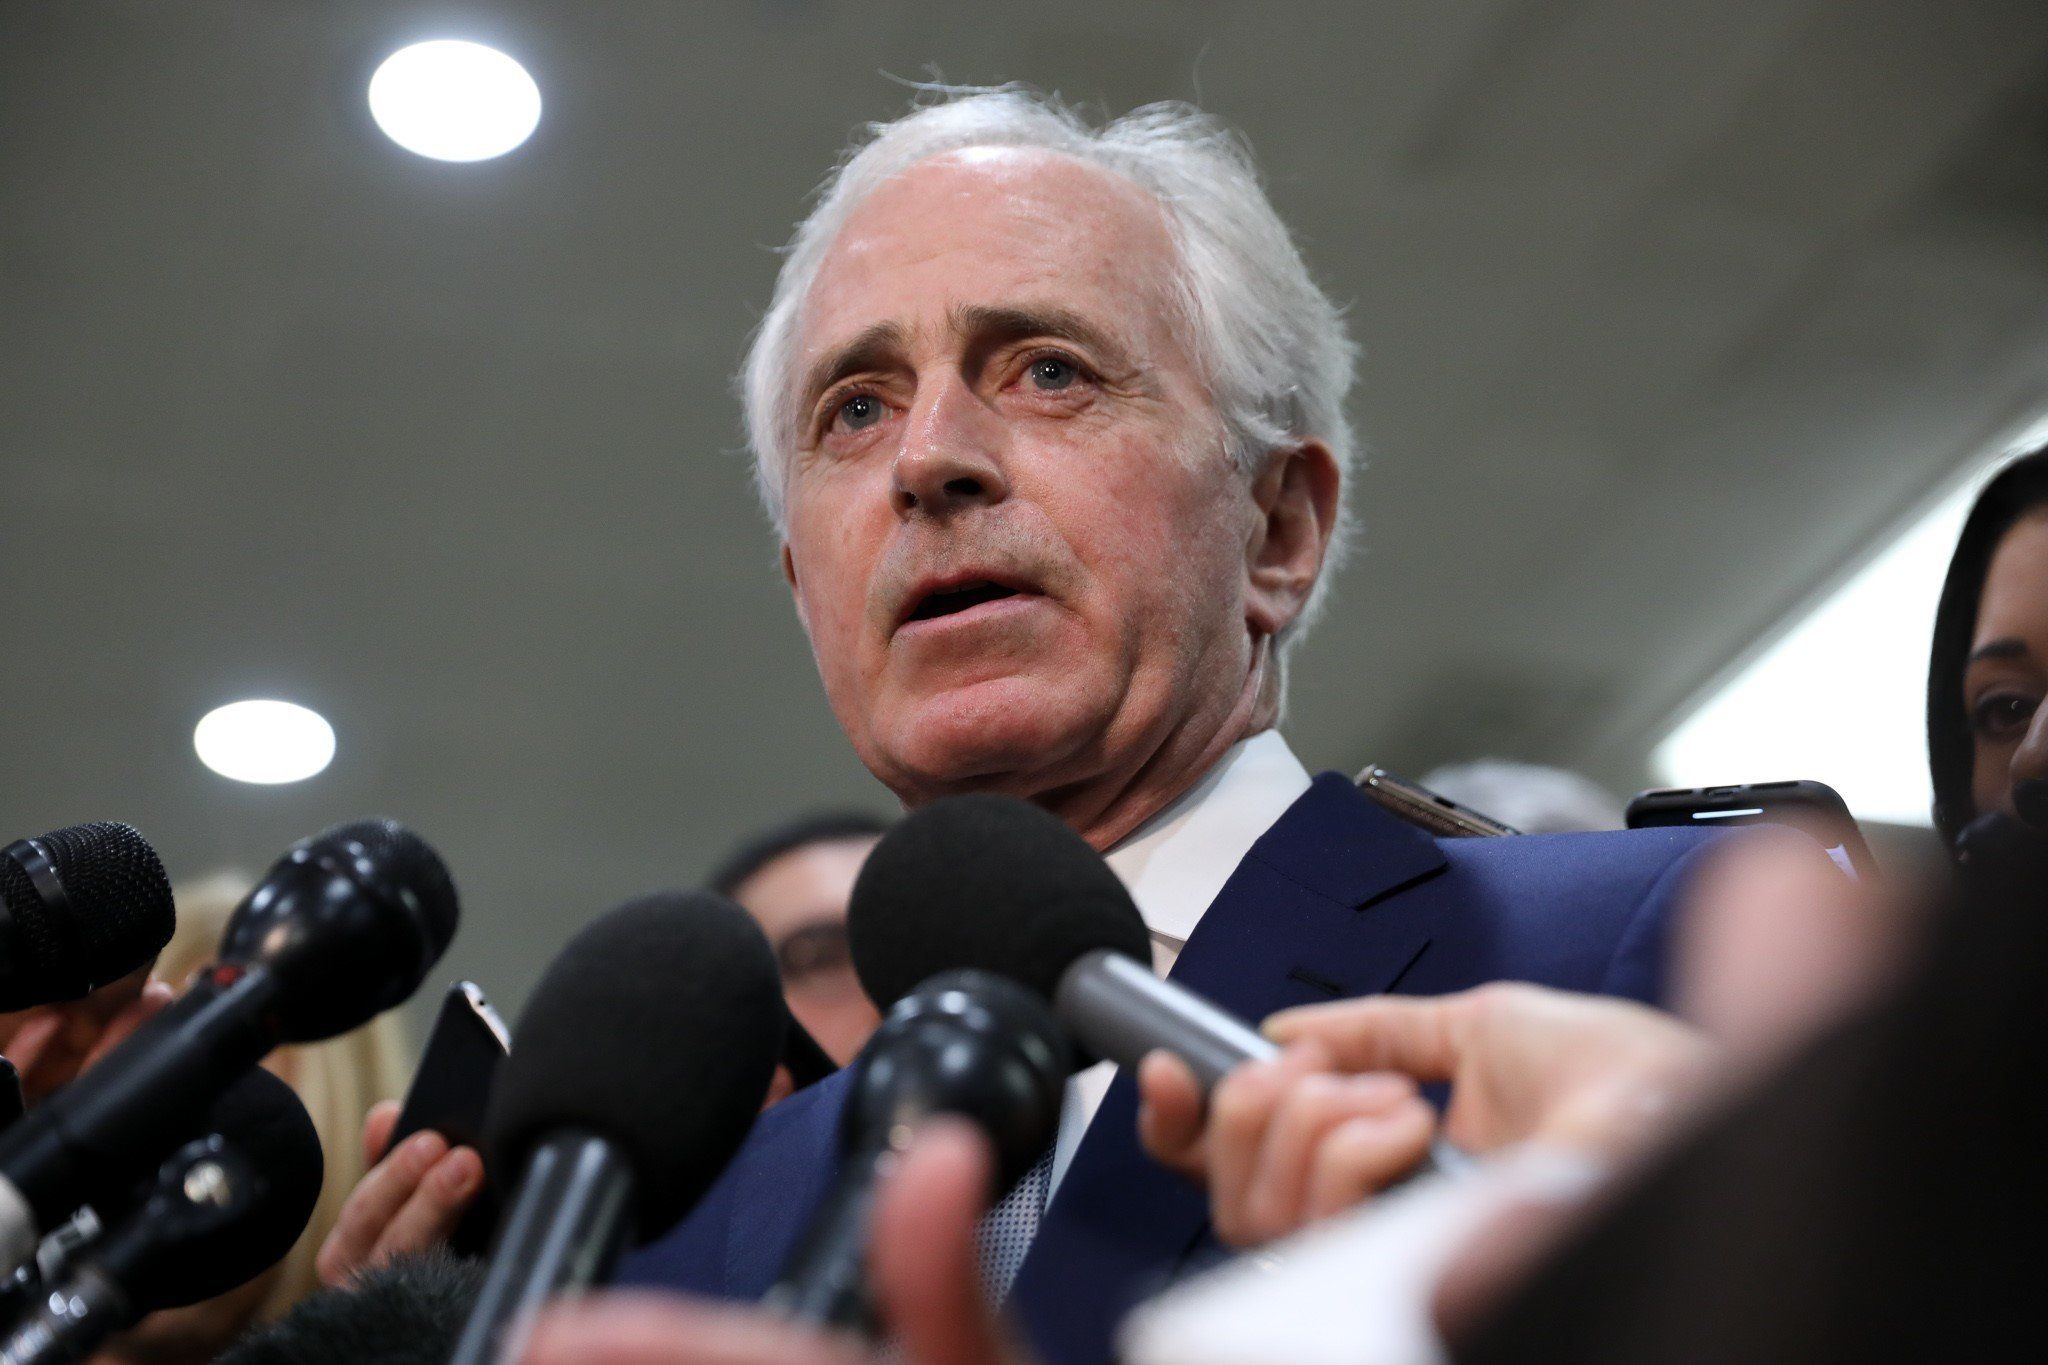 WASHINGTON, USA - DECEMBER 4 :  Senator Bob Corker speaks to journalist  after an intelligence briefing by CIA Director Gina Haspel, on the murder of Jamal Khashoggi in Washington, United States on December 4, 2018. (Photo by Yasin Ozturk/Anadolu Agency/Getty Images)